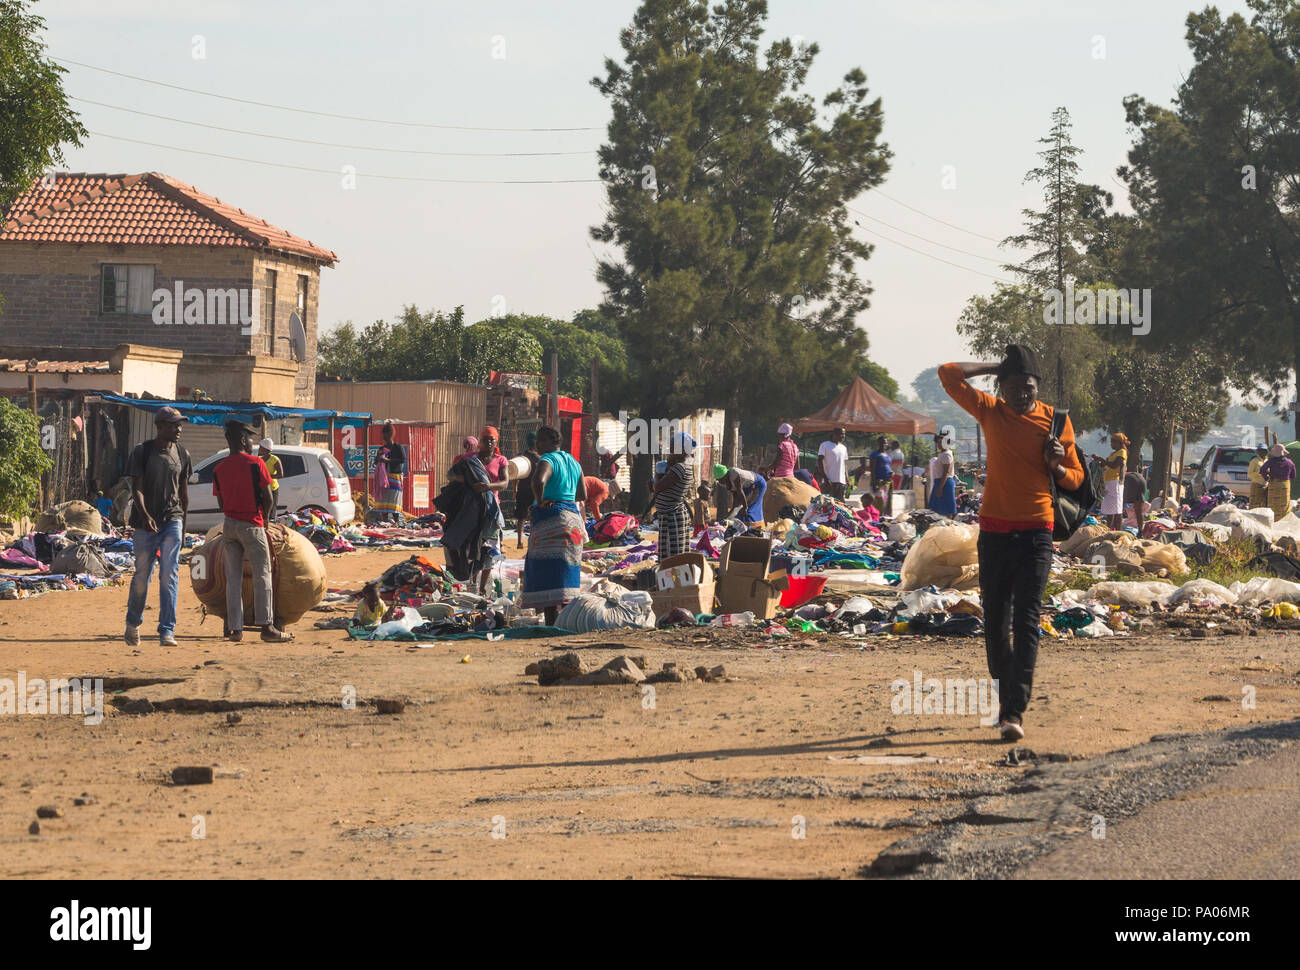 African street market and traders selling and swapping used and new clothing with a crowd of people outskirts of Johannesburg Gauteng South Africa - Stock Image